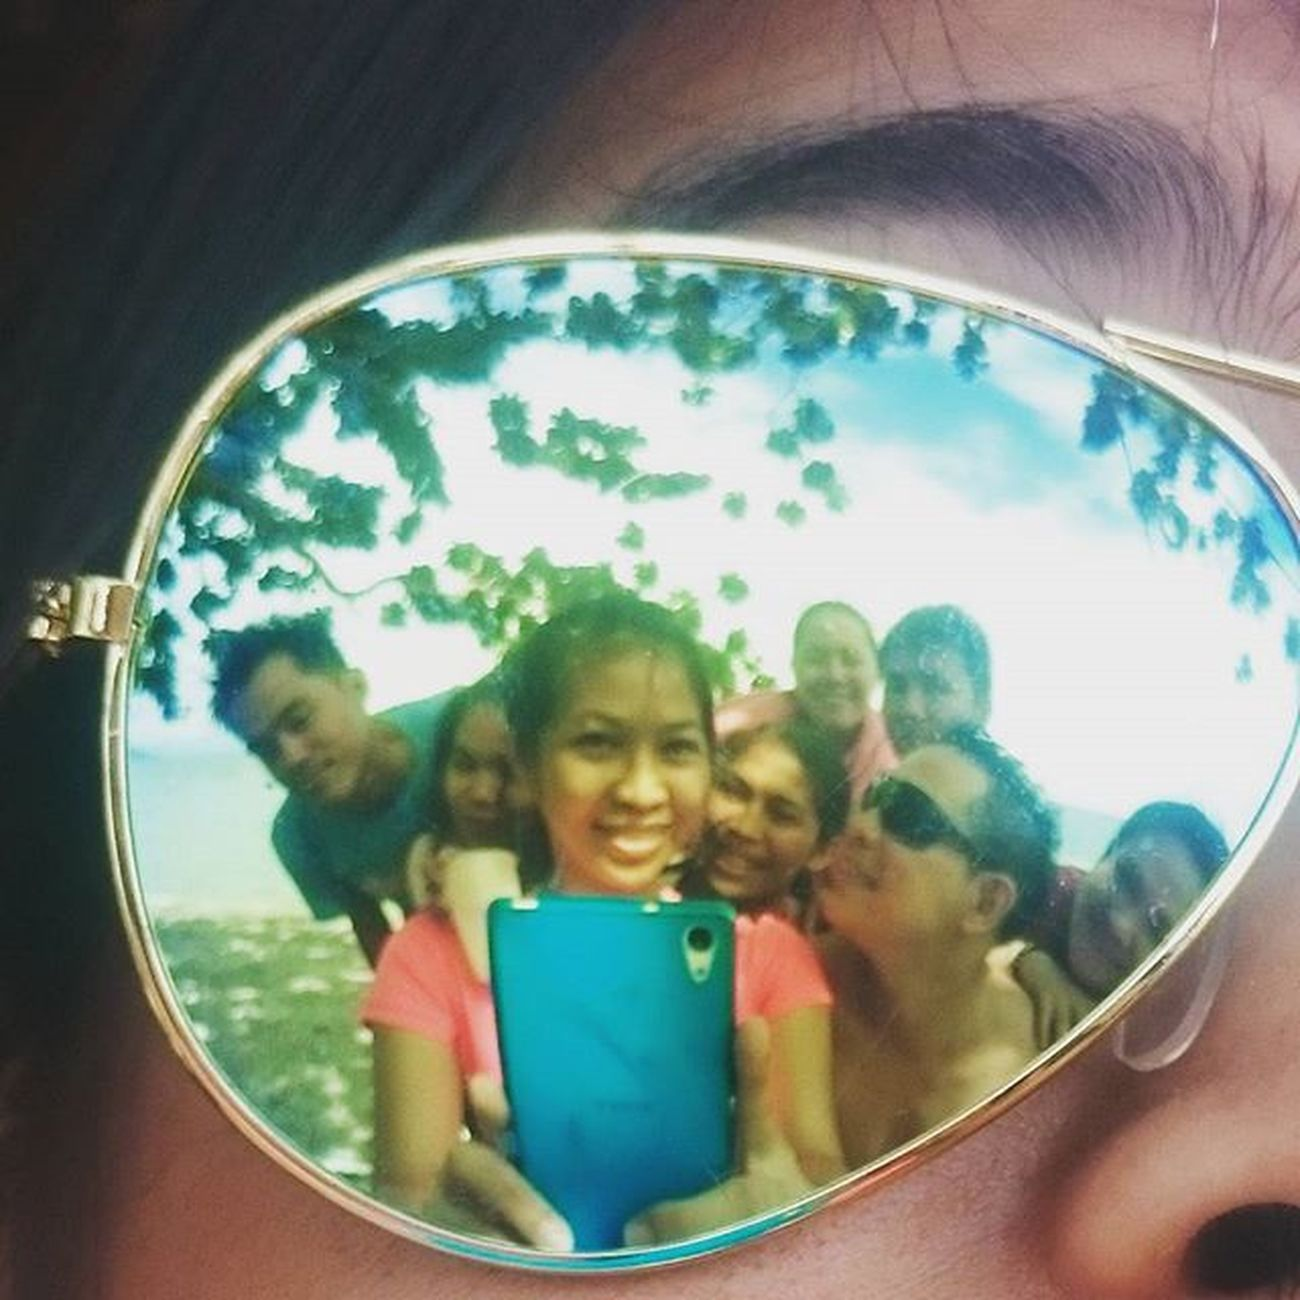 Another shot for THE PESKIES BAYWATCH: Ooohhh look who's here on my flash lens? Cool kids. 😎😄😁👍👌 Peskiesonthego PlainHappiness November182015 Escapade Latepost KristinaEPICOLAF KristinaEpicCatIdeas Sonyverse XPERIA ICAN BeMoved